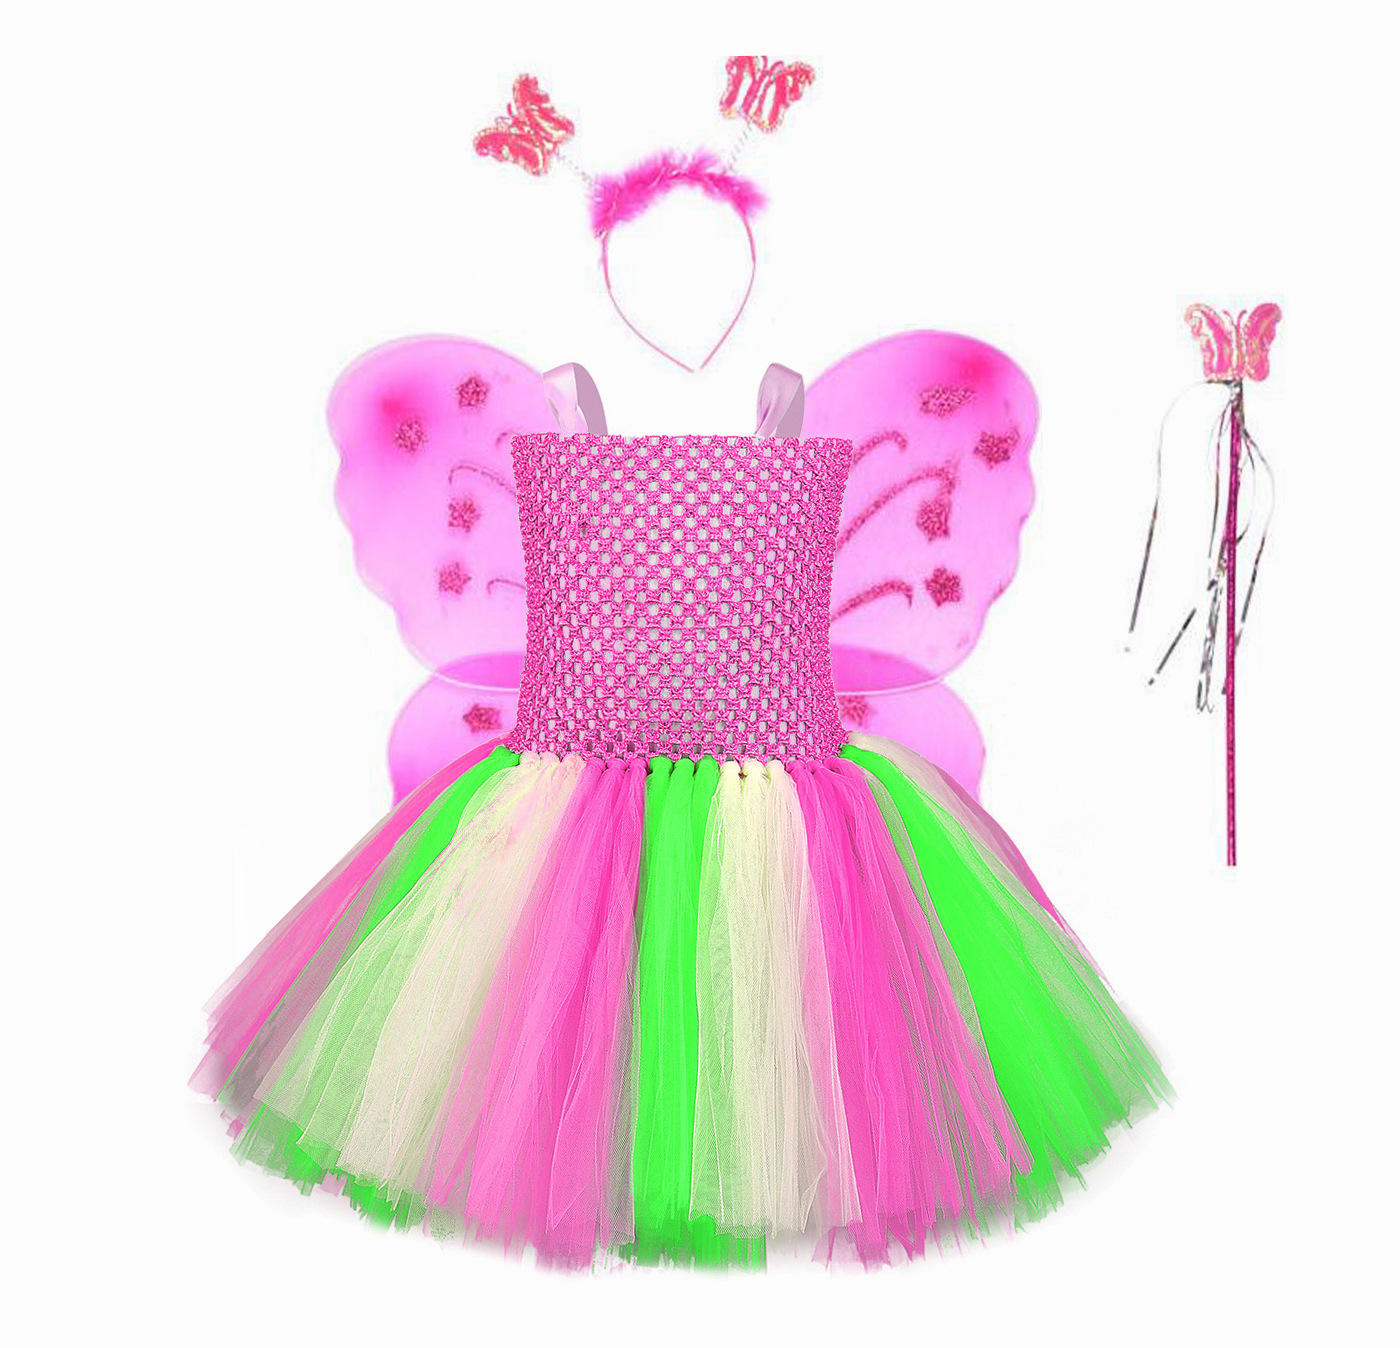 Supplier Party Pink Rainbow Tutu Dress Sleeveless Fairy Dress With Wing And Wand Cosplay Summer Kids Costume